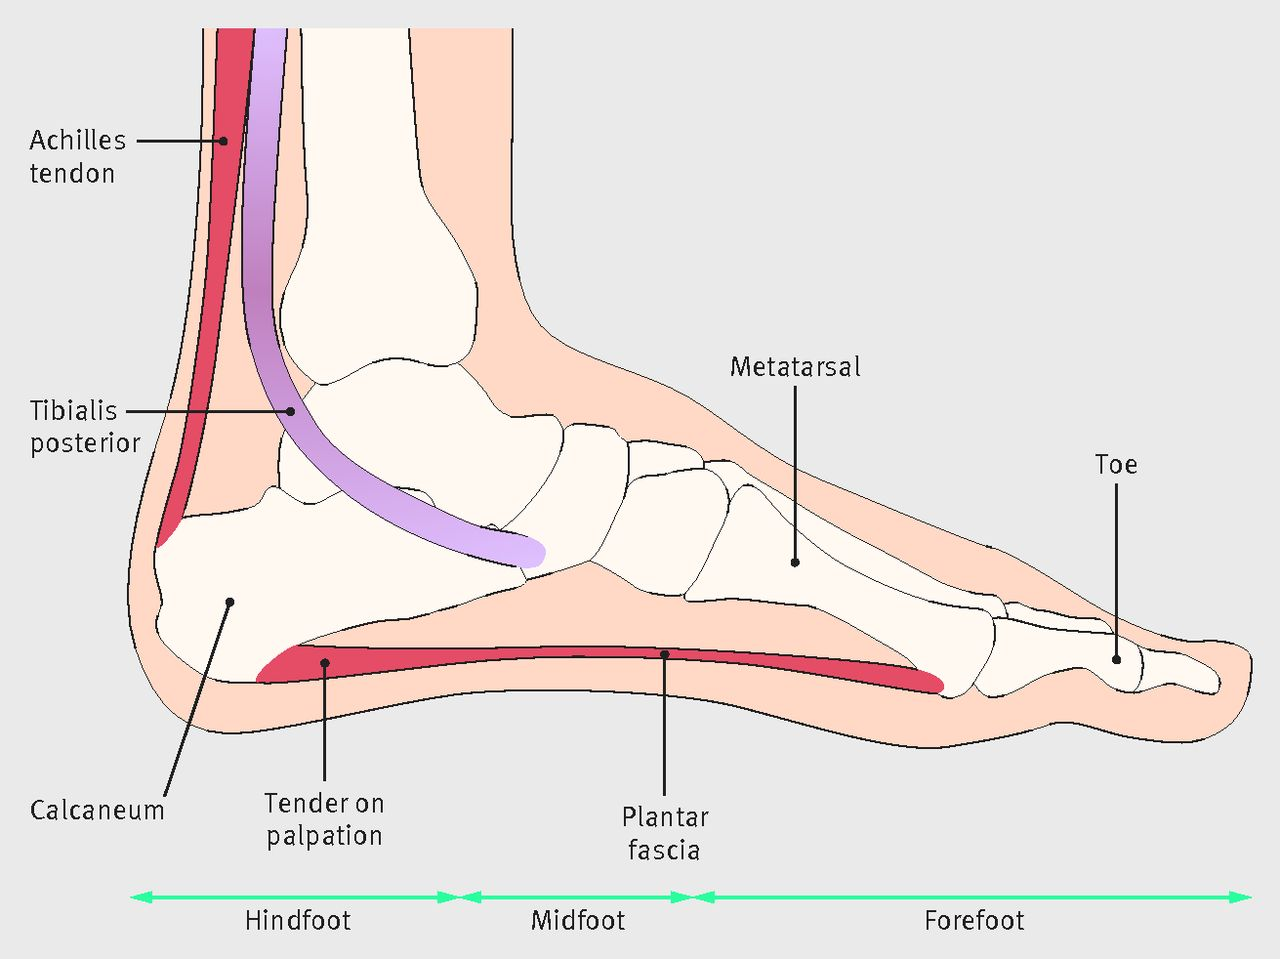 2388a02a57 Fig 1 Soft tissue anatomy relevant for differential diagnoses of plantar heel  pain. For plantar fasciitis to be confirmed, pain on palpation is felt over  ...